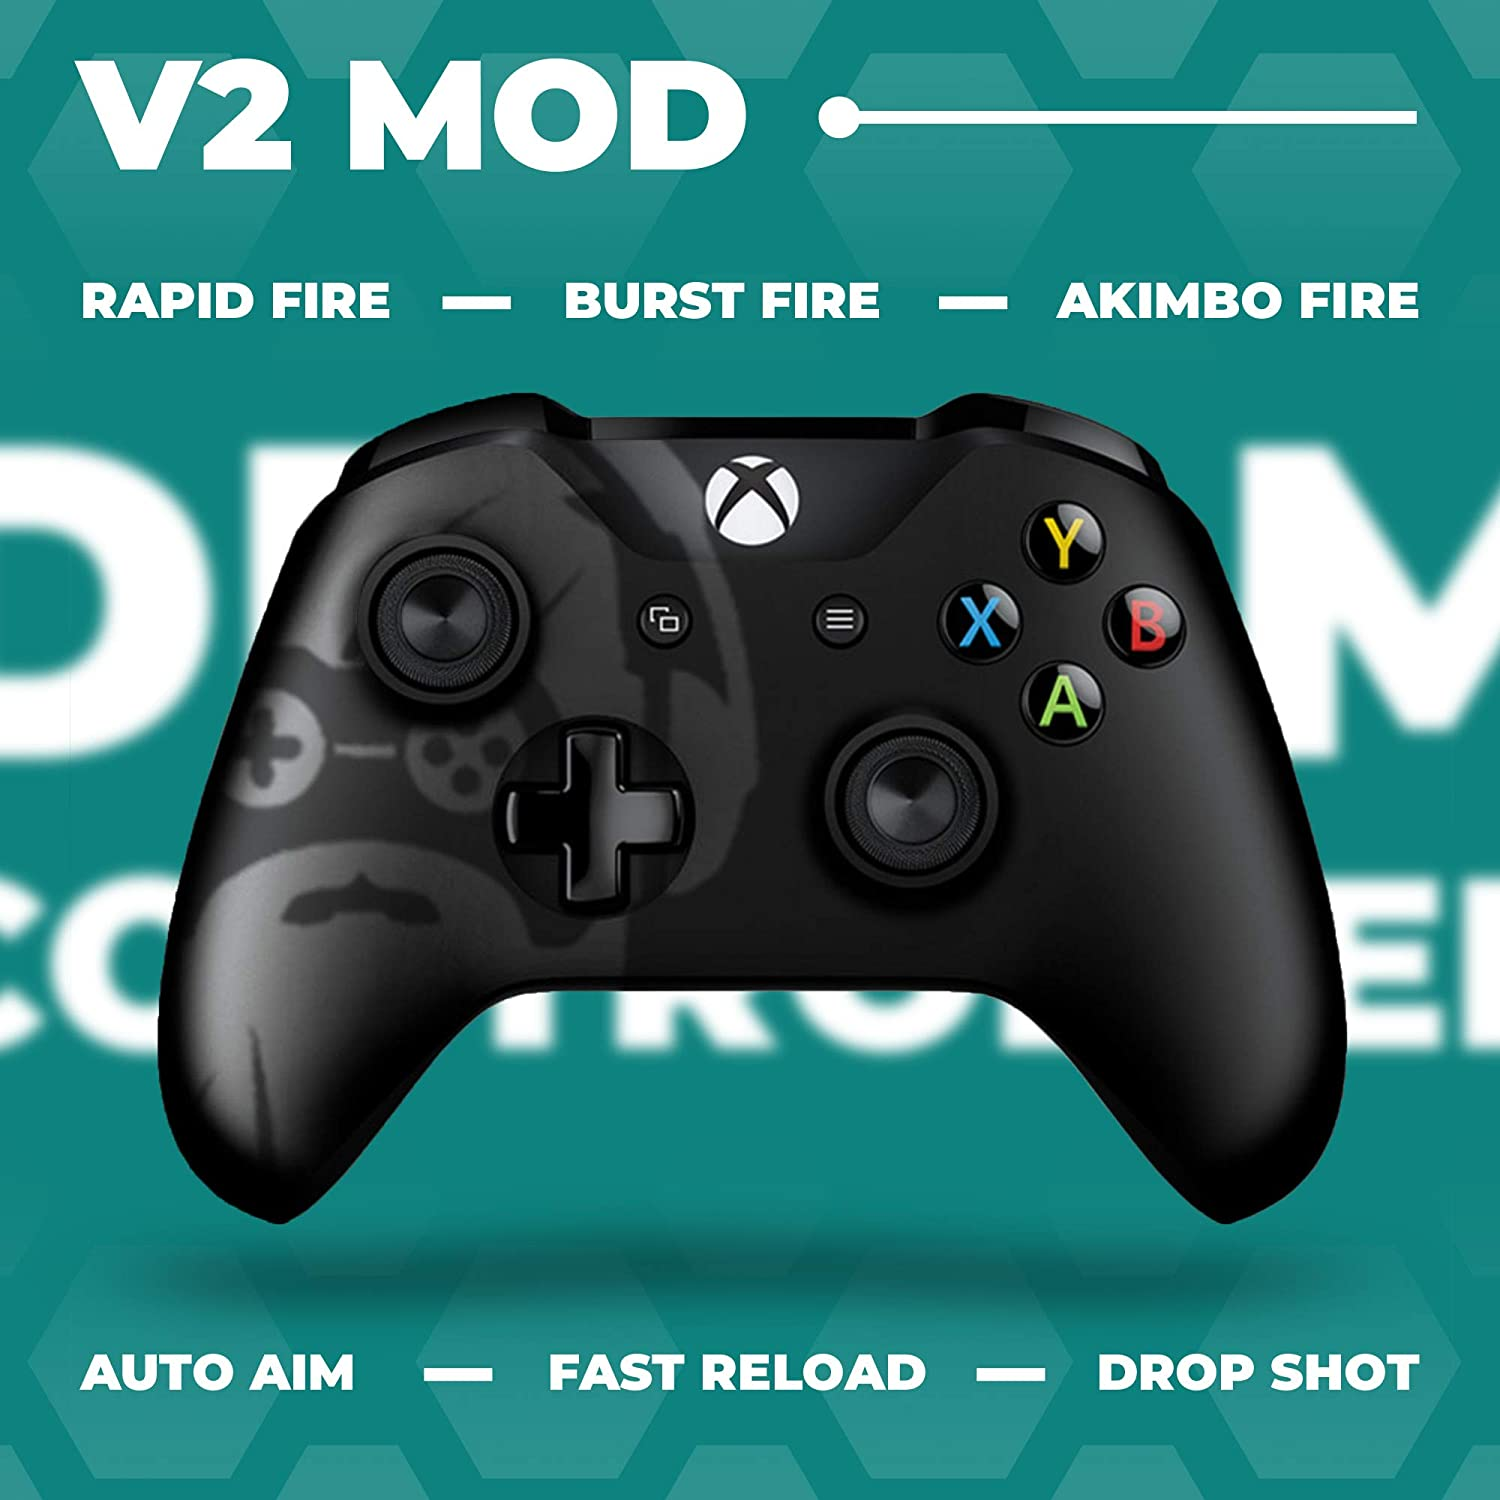 Rapid Fire and Aimbot Xbox One Controller with Included Mods Manual DreamController Modded Xbox One Controller Xbox One Modded Controller Works with Xbox One S//Xbox One X//and Windows 10 PC